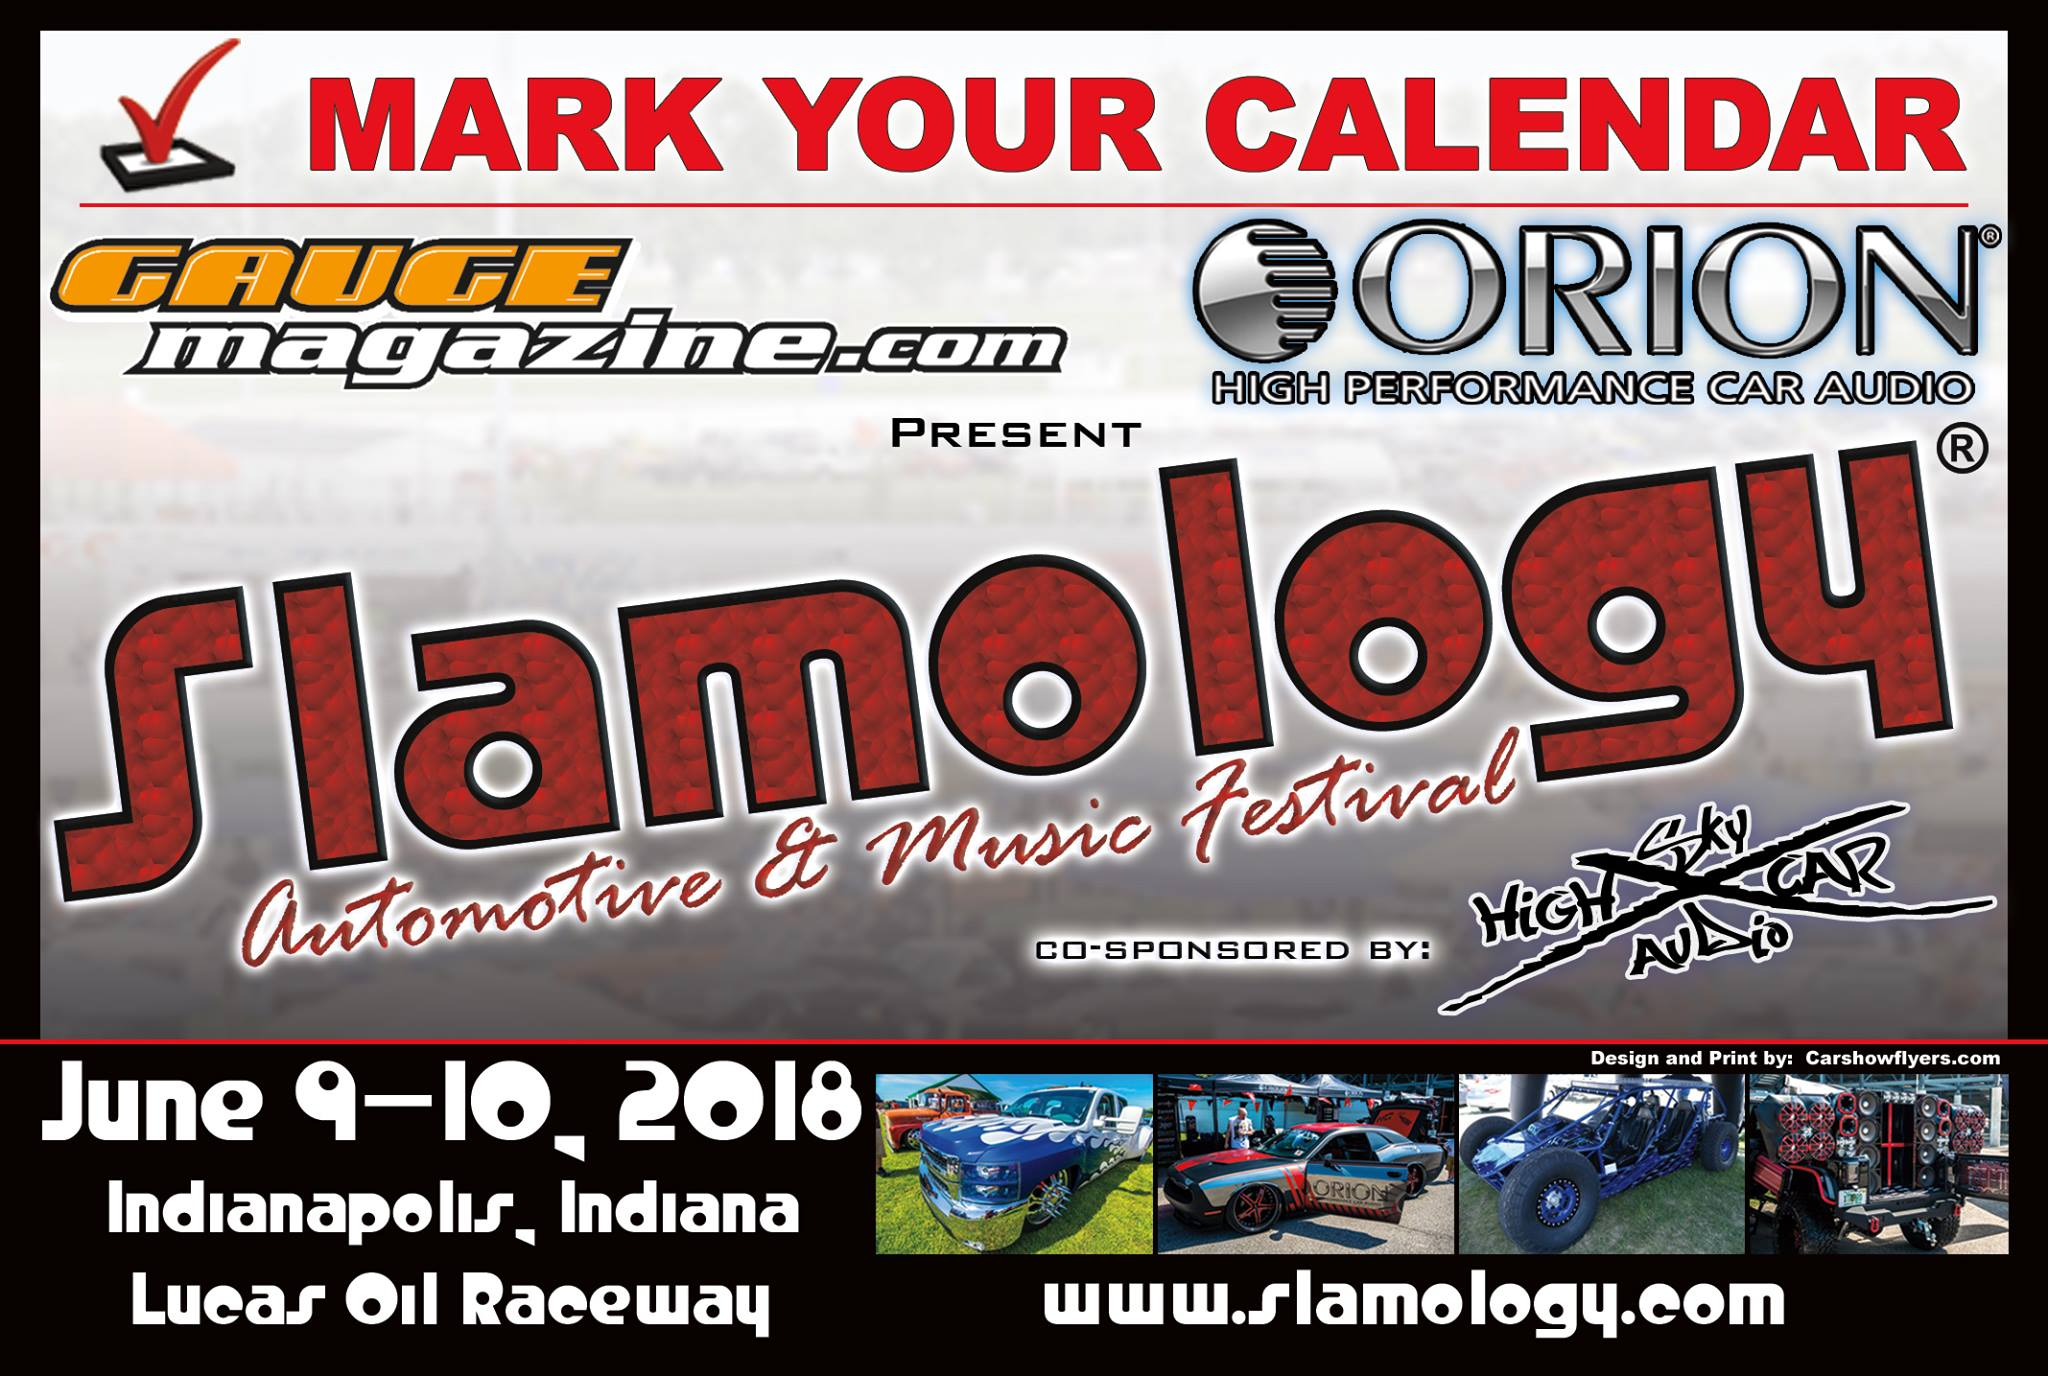 15th Annual Slamology Automotive And Music Festival Gauge